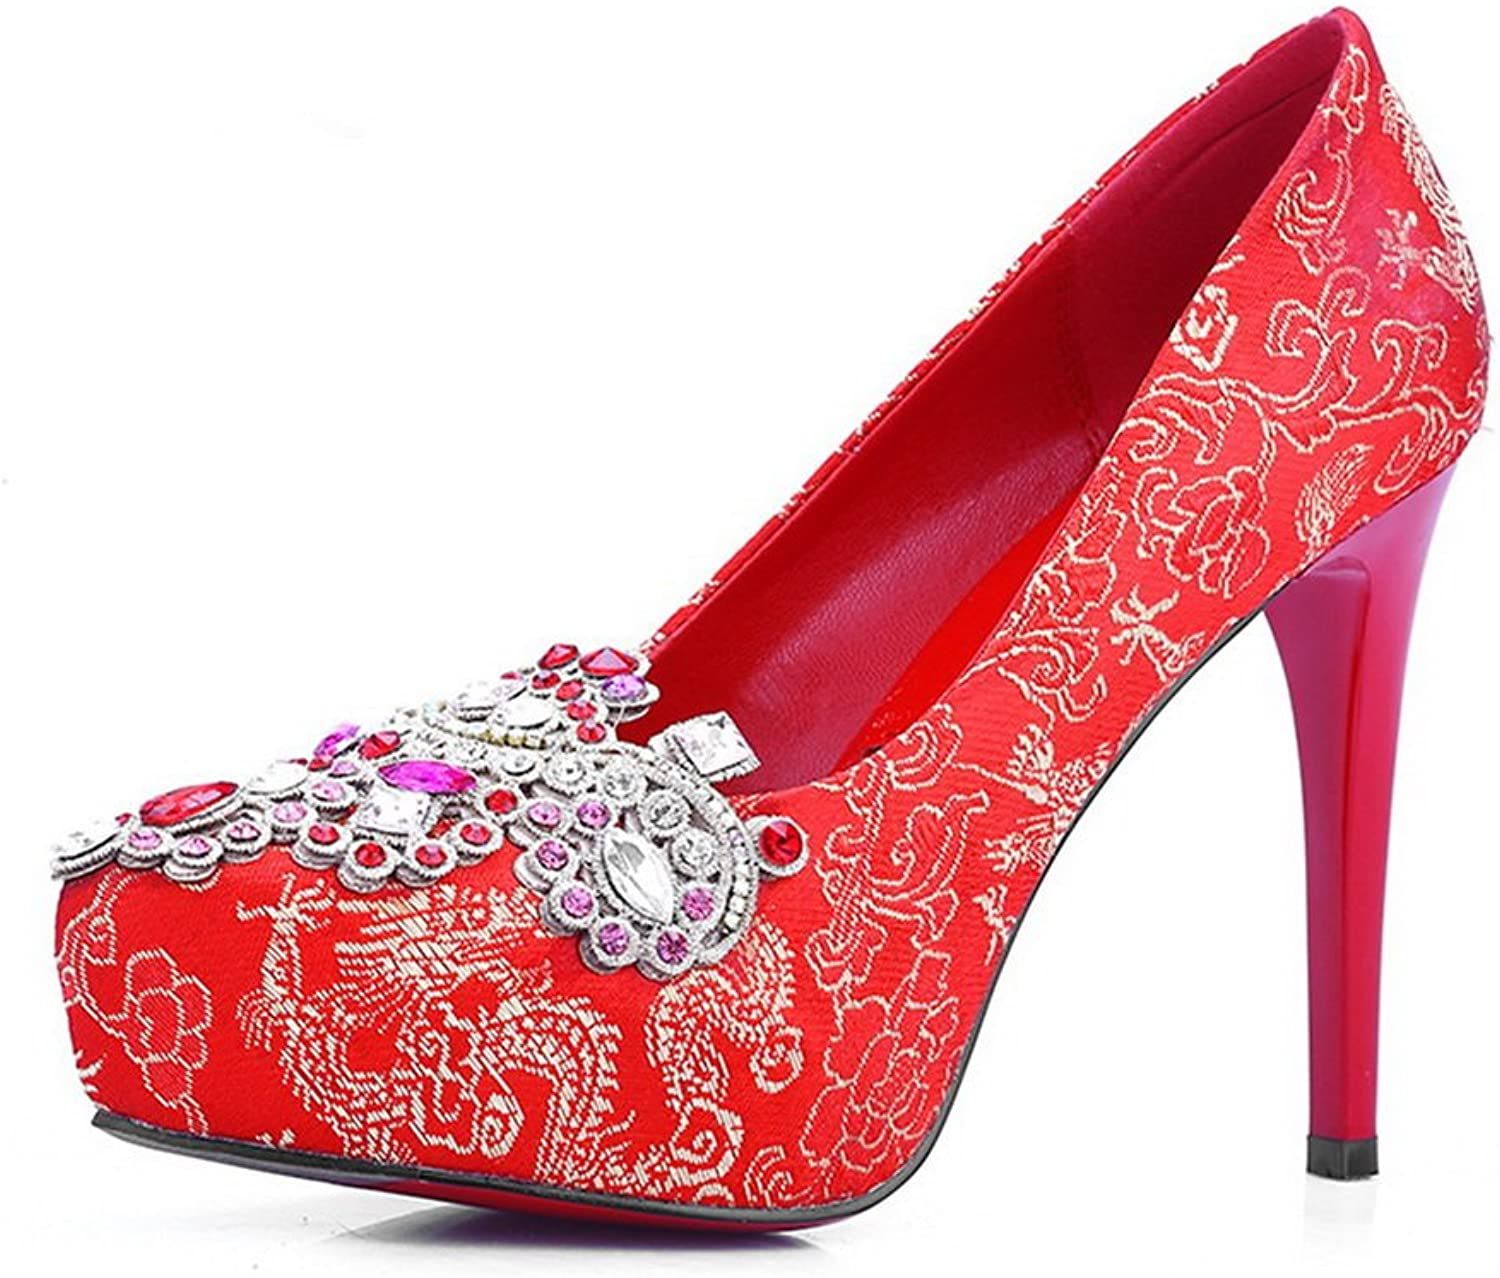 1TO9 Womens Bridal Platform Round-Toe Embroidered Silk Pumps shoes MMS04765